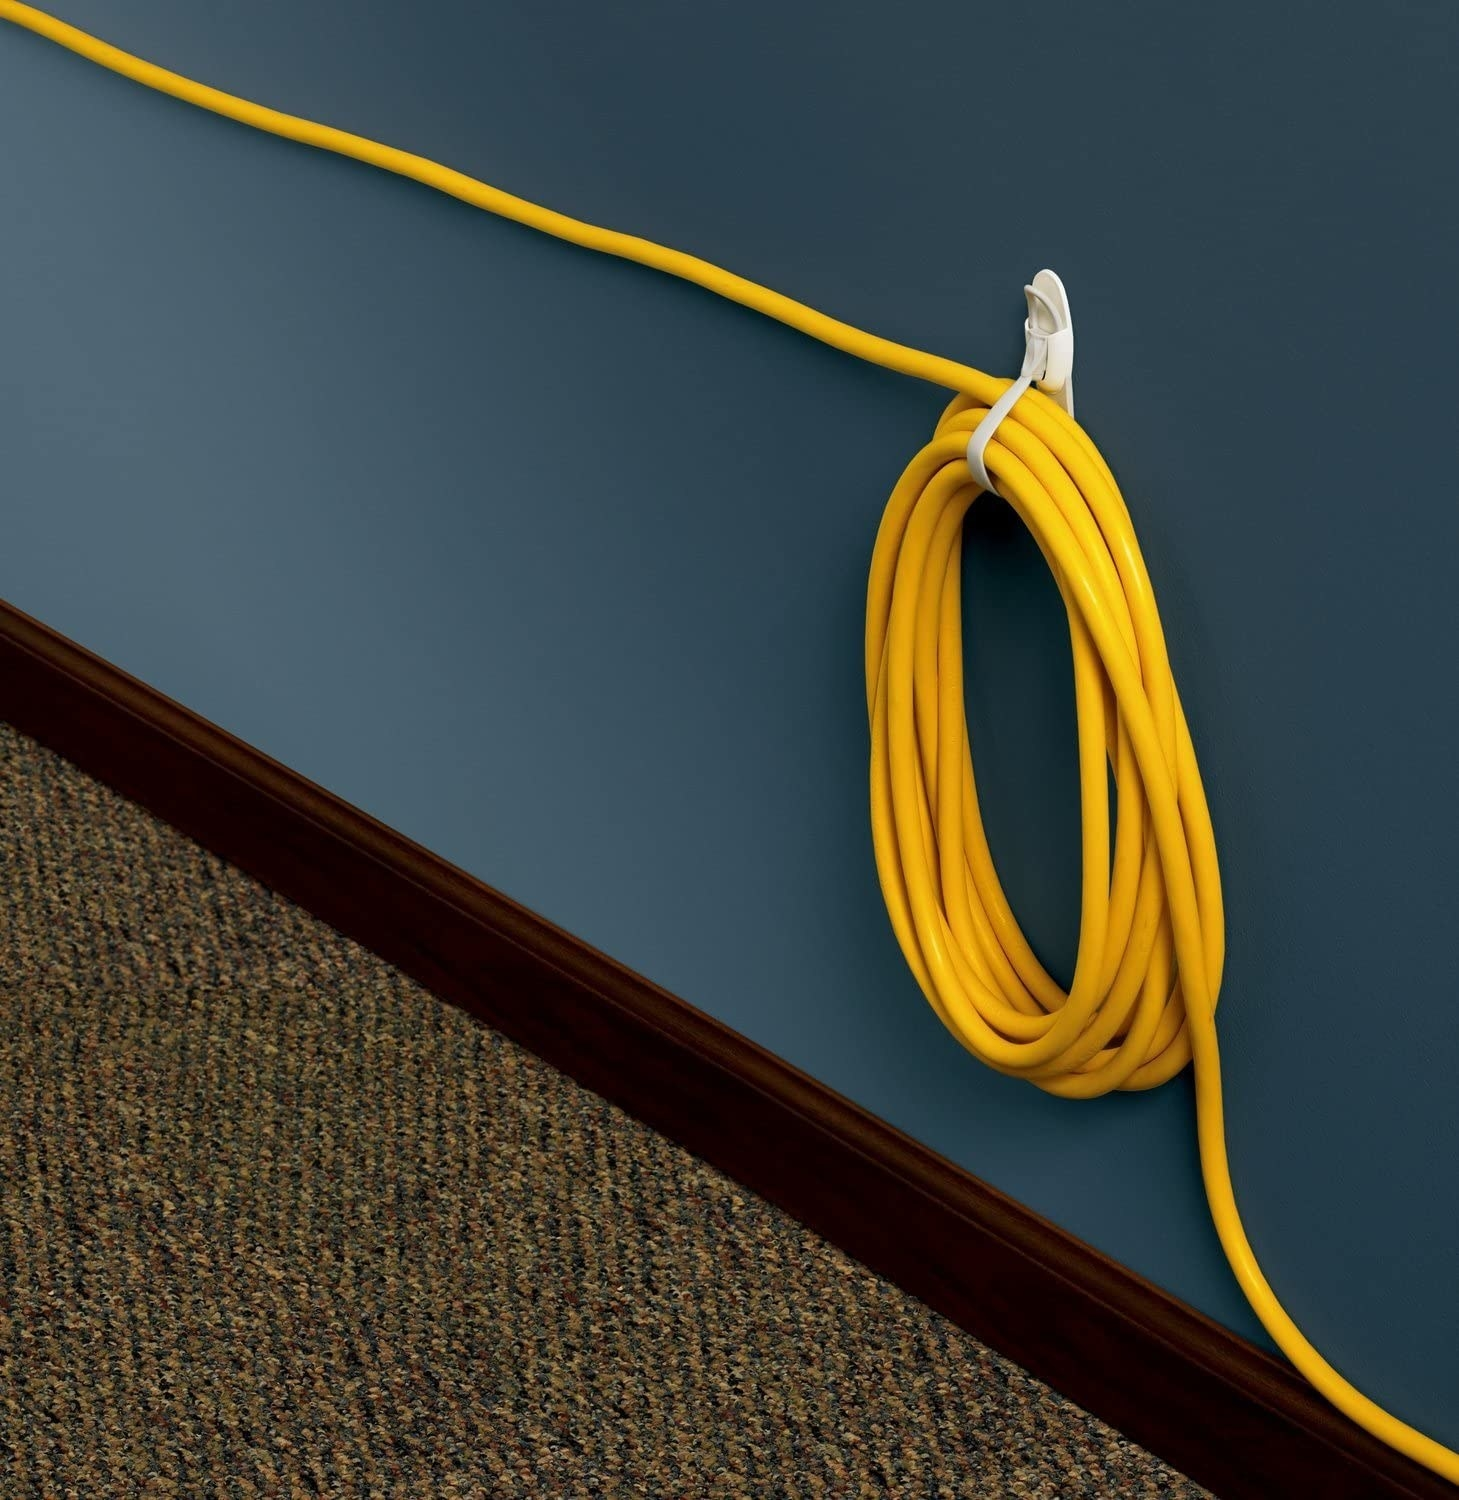 The cord bundler stuck to a wall with a cord wrapped around it